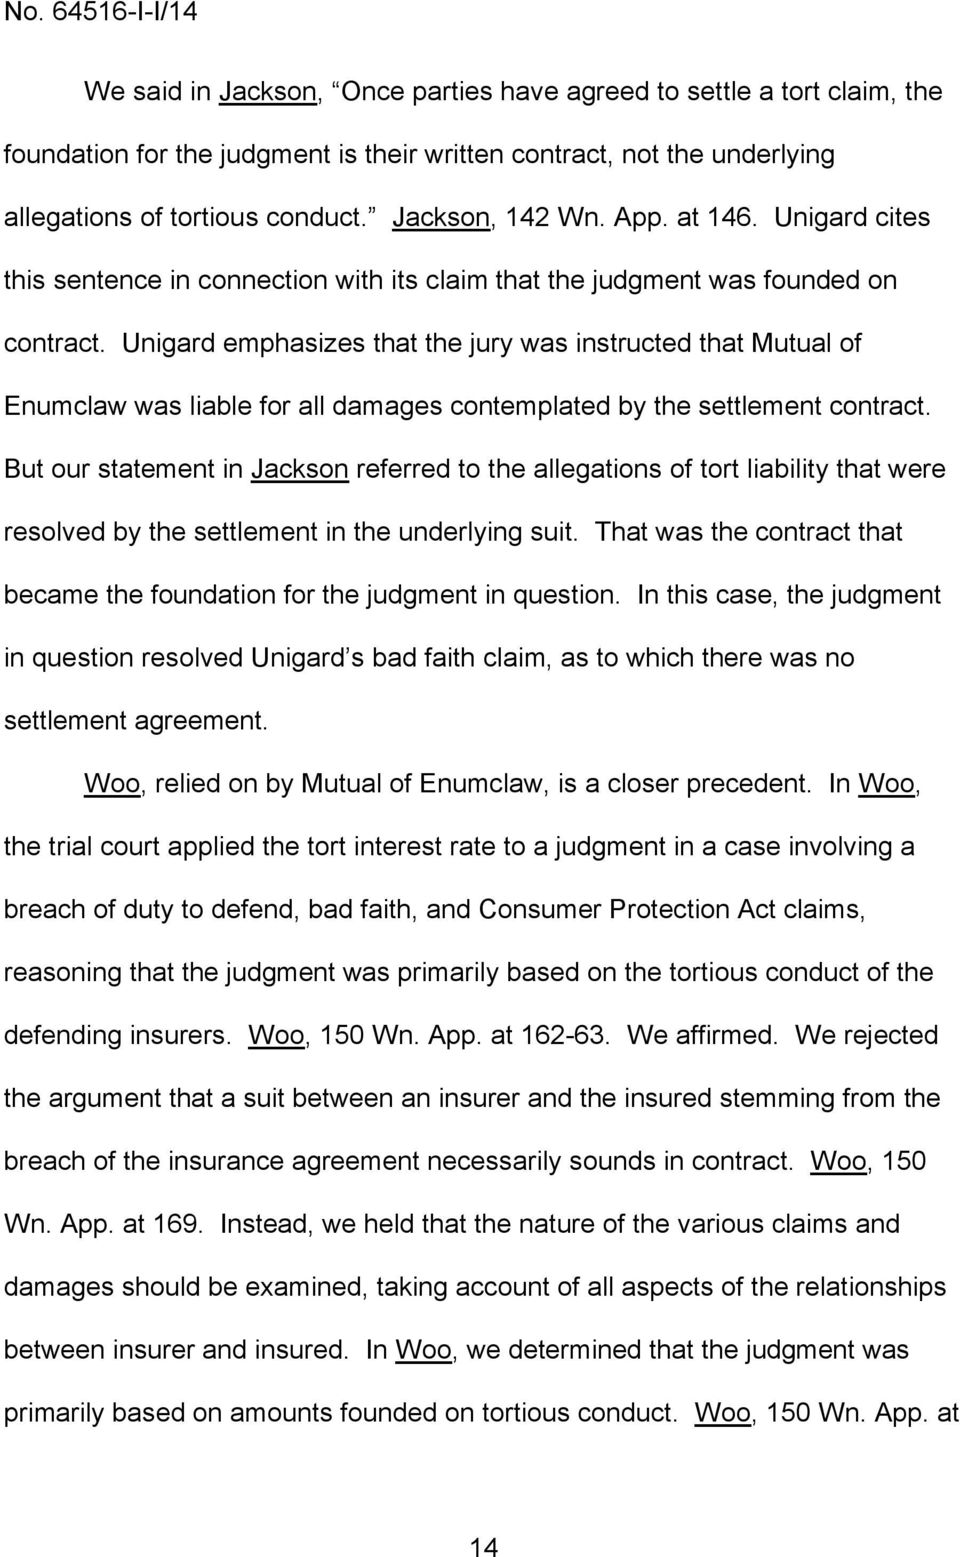 Unigard emphasizes that the jury was instructed that Mutual of Enumclaw was liable for all damages contemplated by the settlement contract.